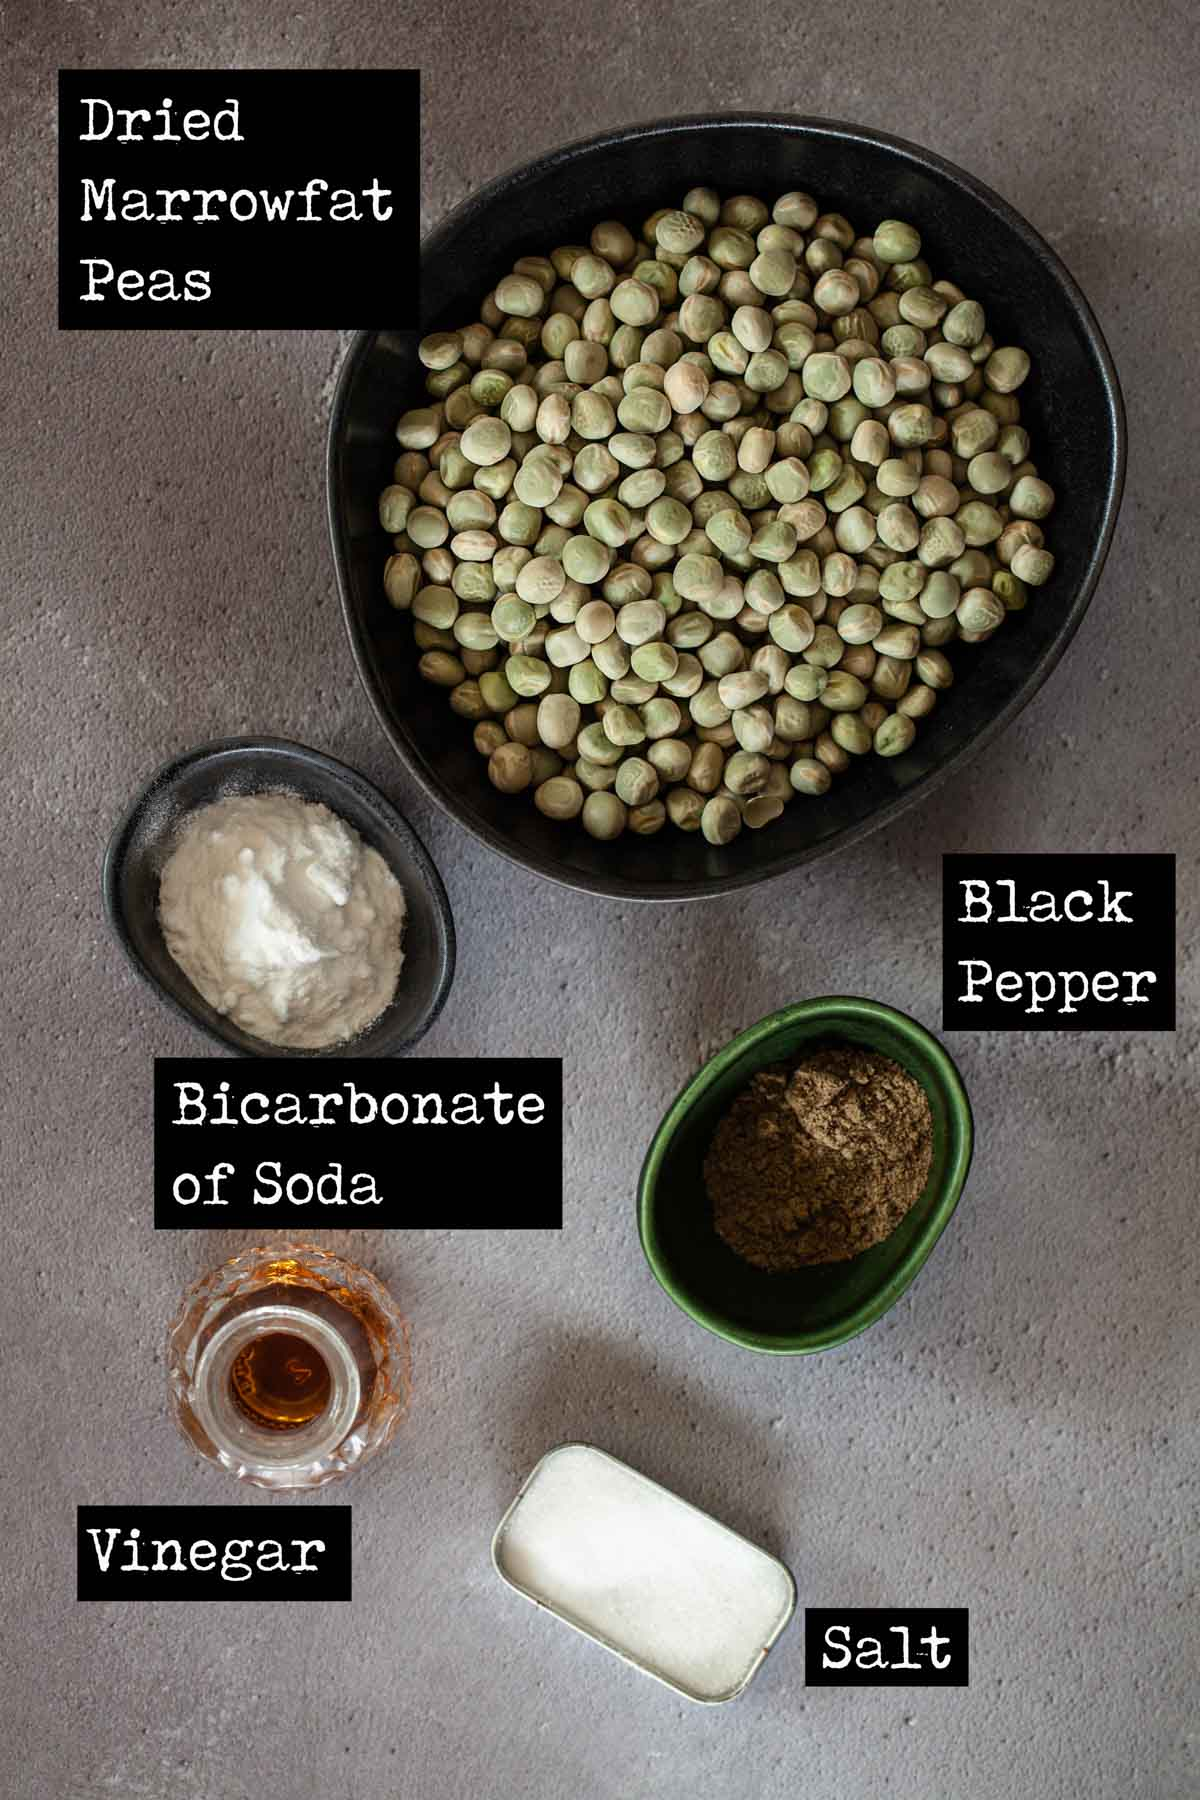 Dried marrowfat peas and other ingredients in bowls